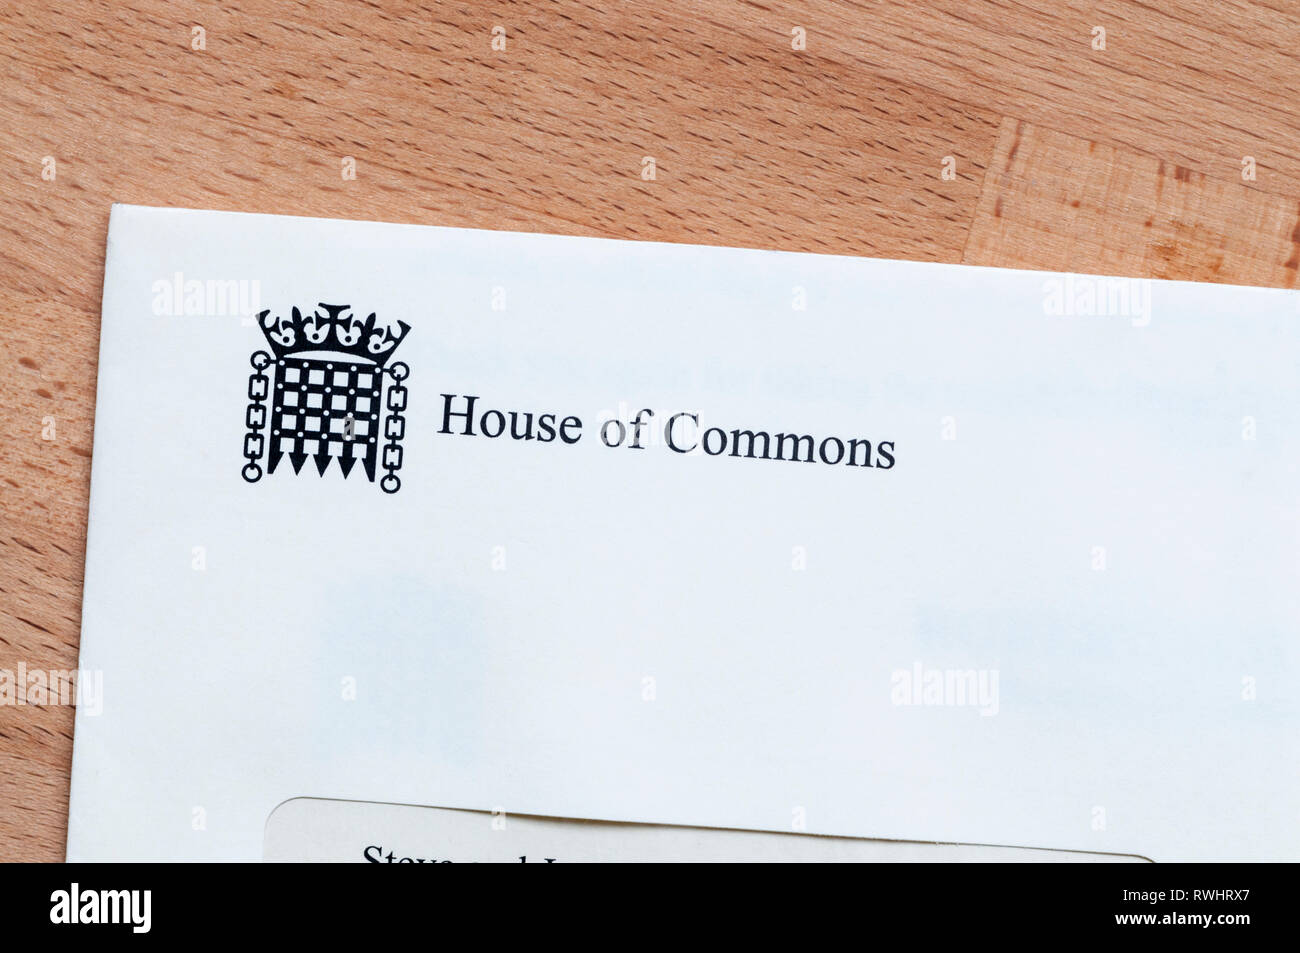 A letter from the House of Commons. - Stock Image